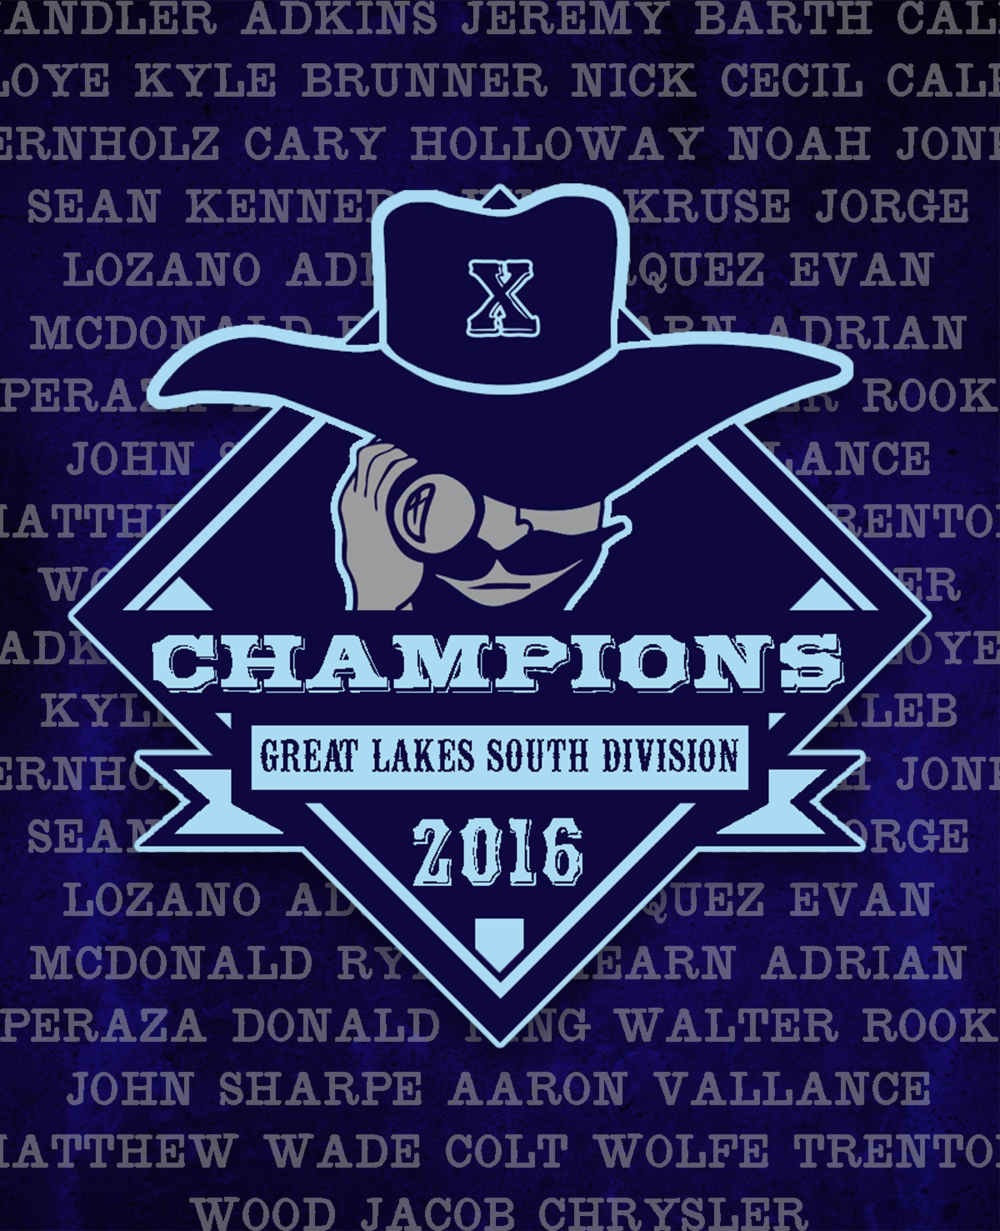 Xenia Scouts Great Lakes South Division Champions graphic created by Gardner